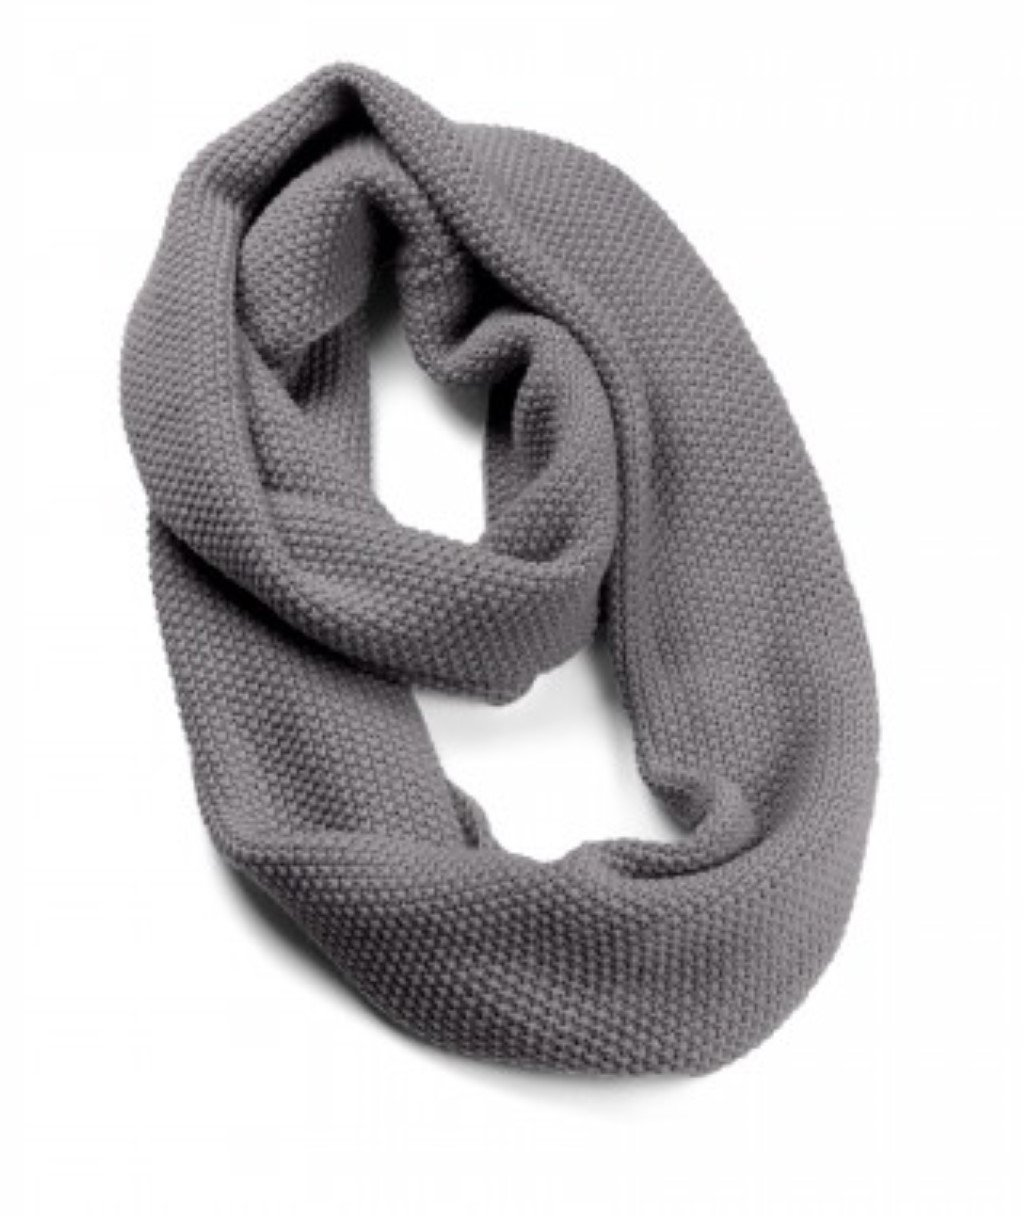 Sprigs Winter Infinity Scarf (Charcoal Gray)